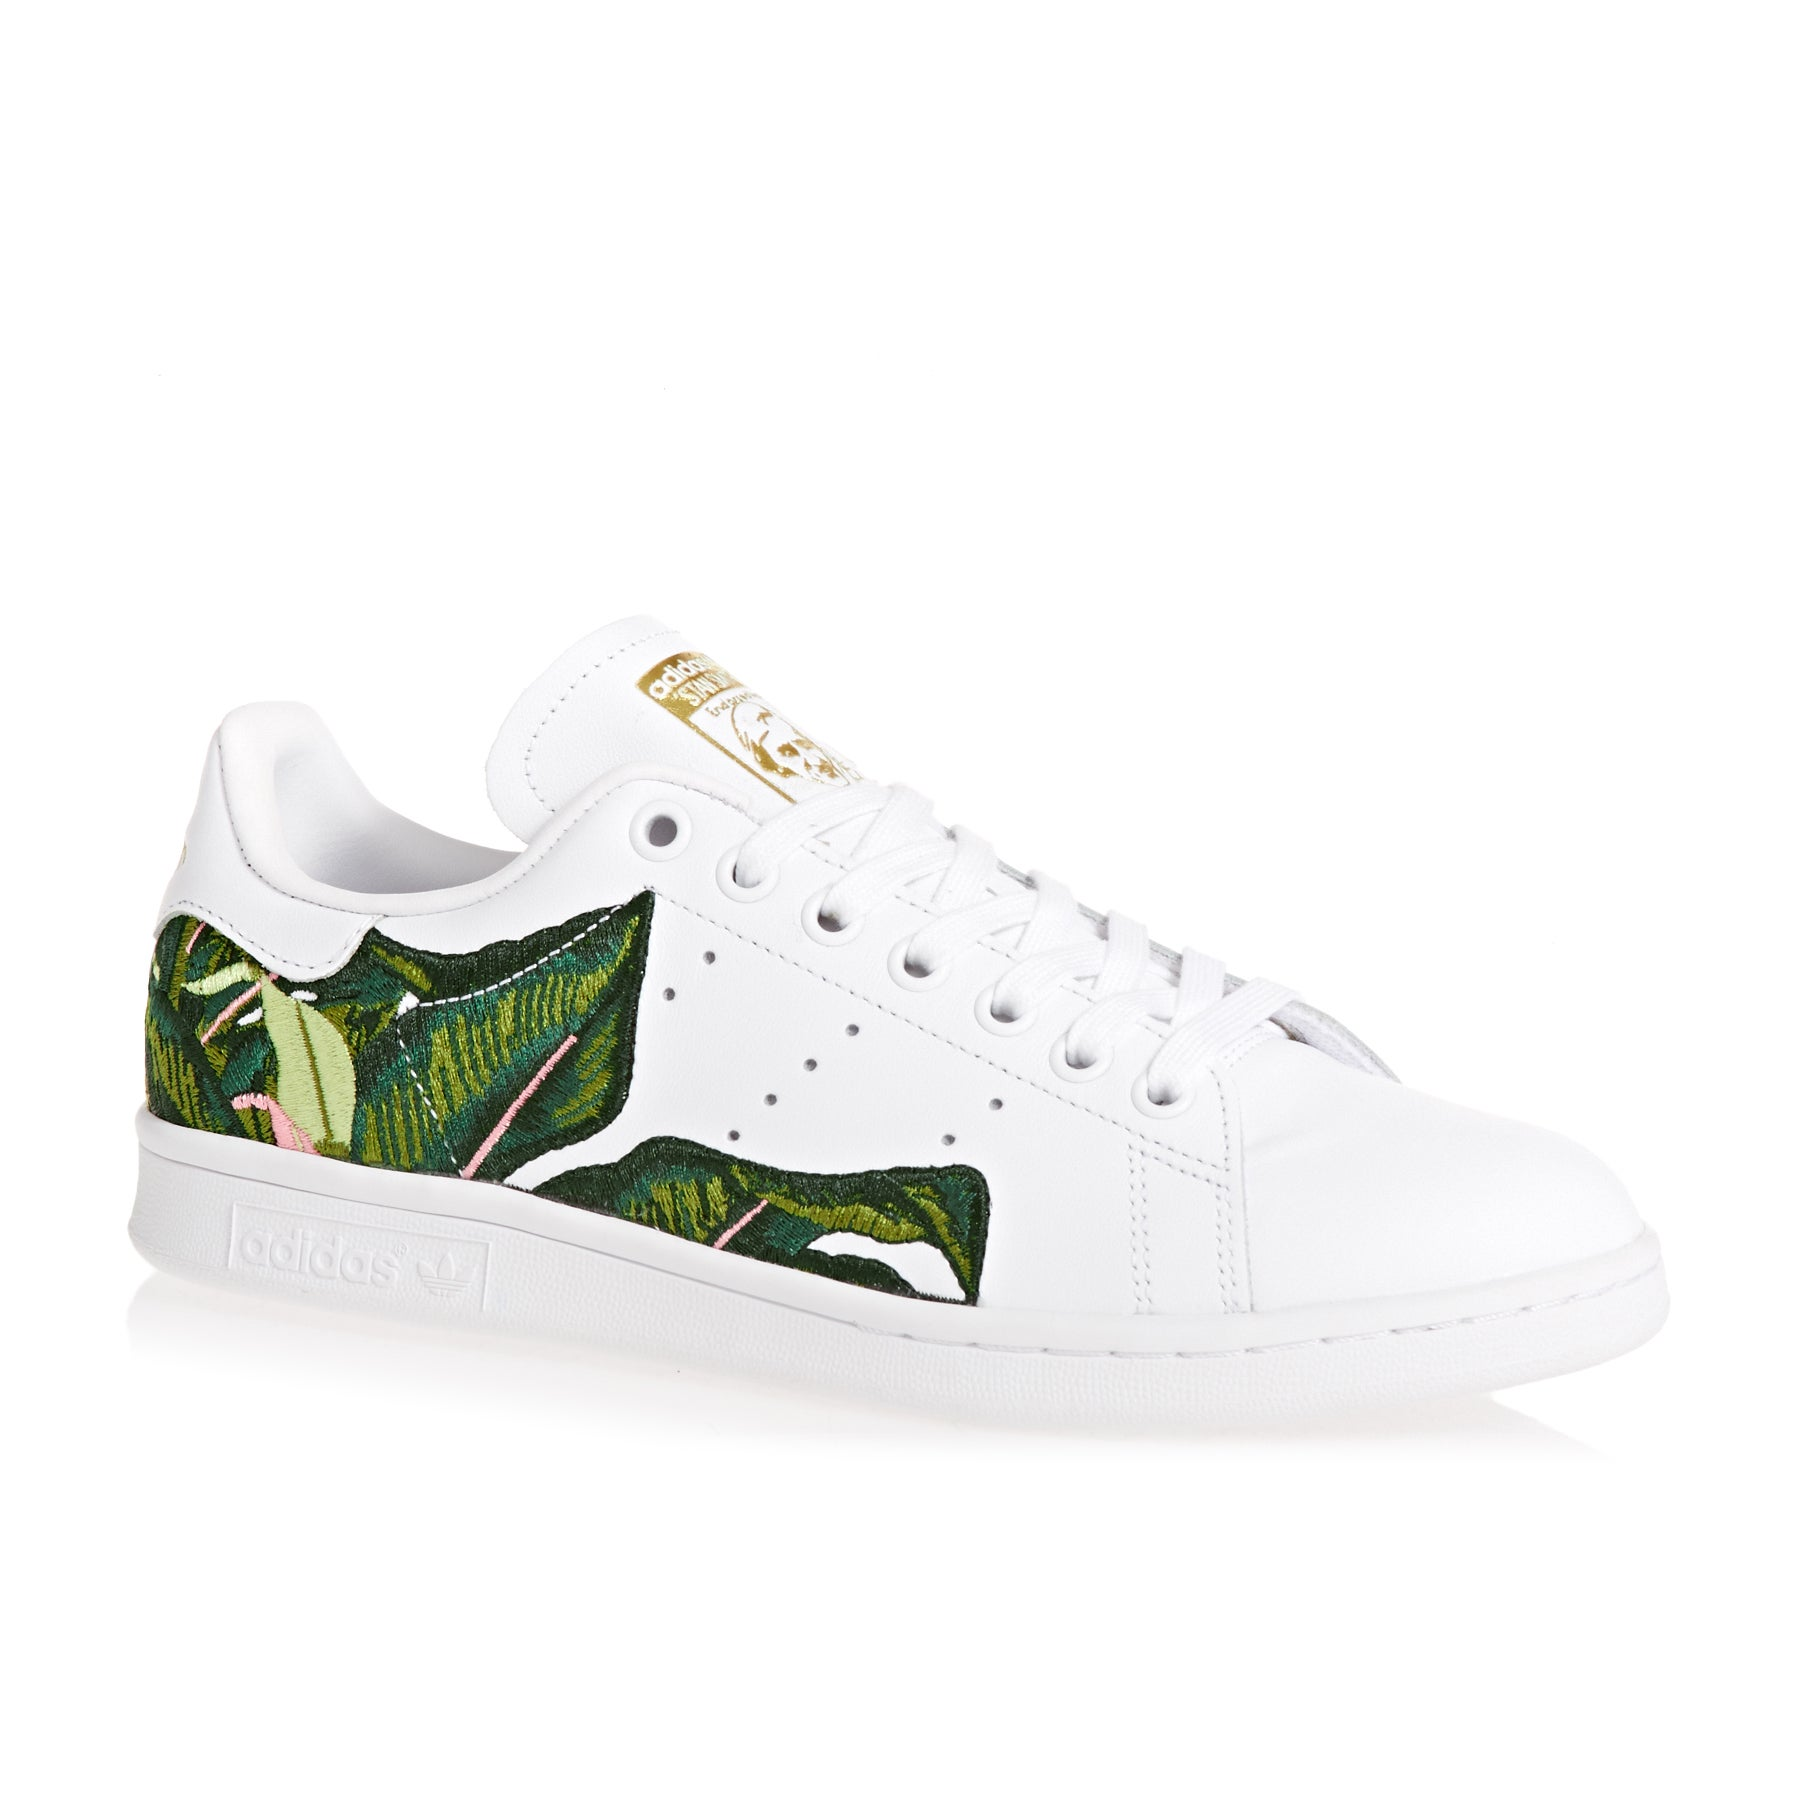 Adidas Originals Stan Smith Womens Shoes - Ftwwht/ftwwht/goldmt